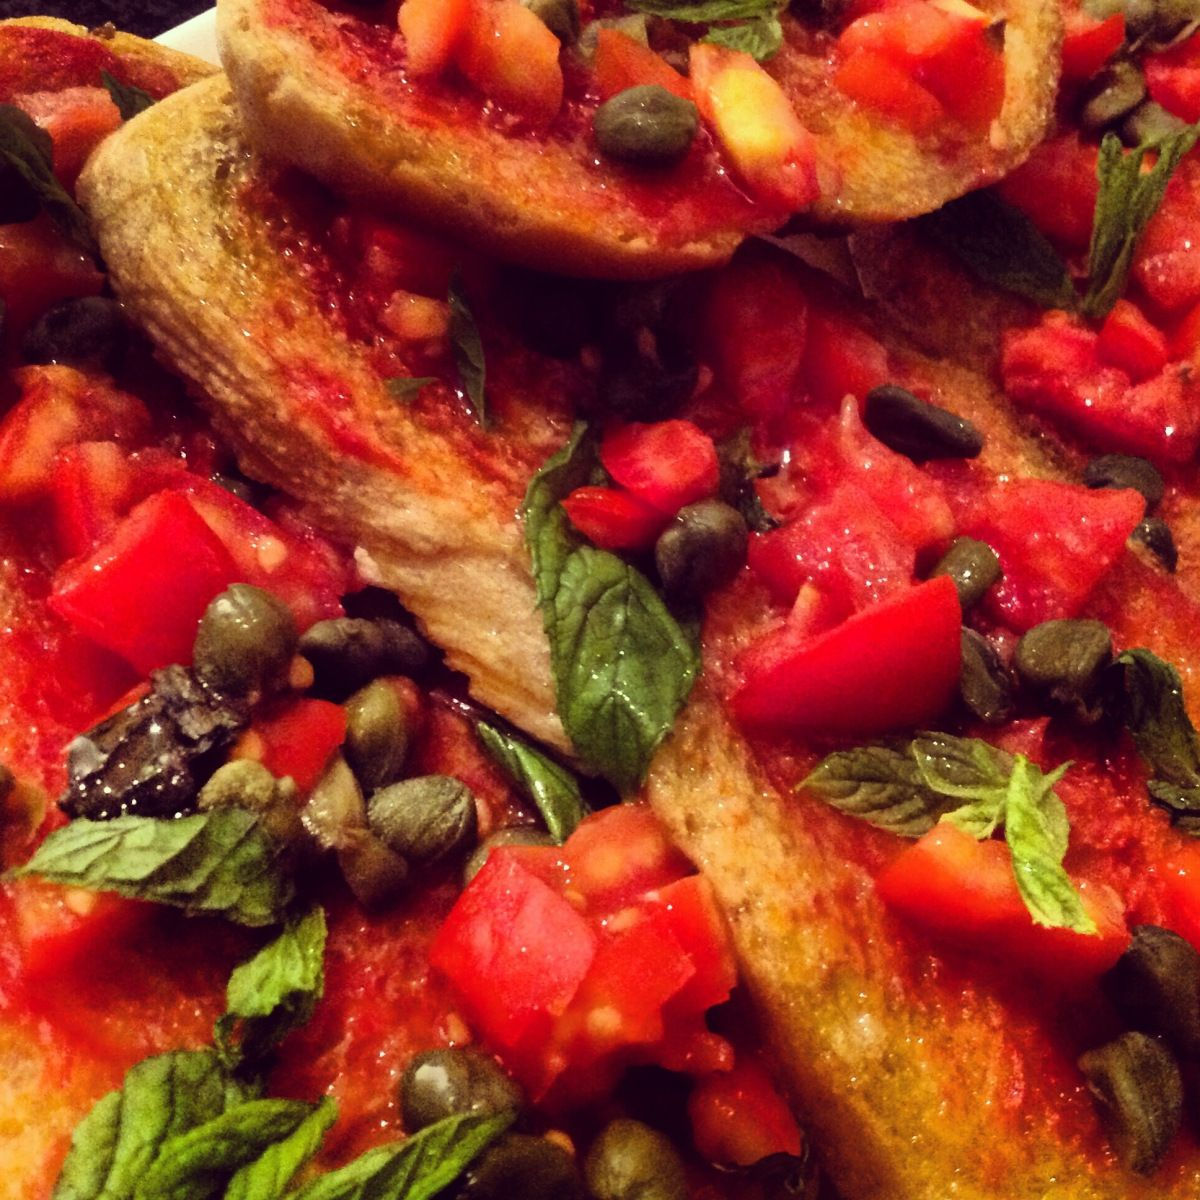 #Recipe for Mediterranean sourdough bread with tomatoes ..... so traditional, colorful and fun !